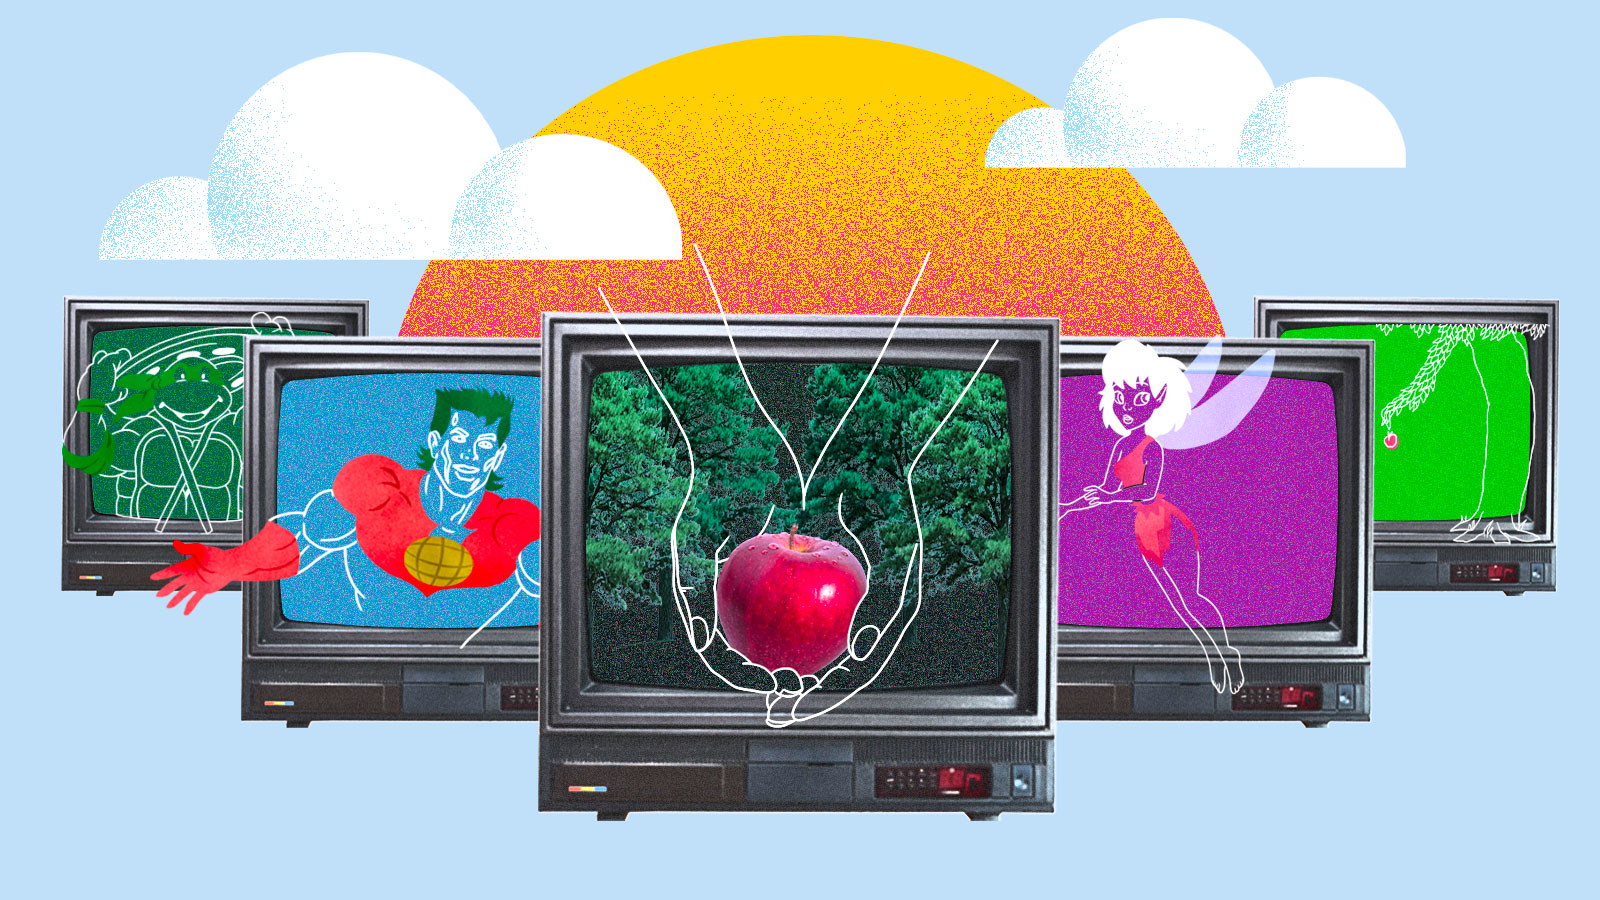 Collage: old TVs with images of nostalgic cartoons, books, and movies